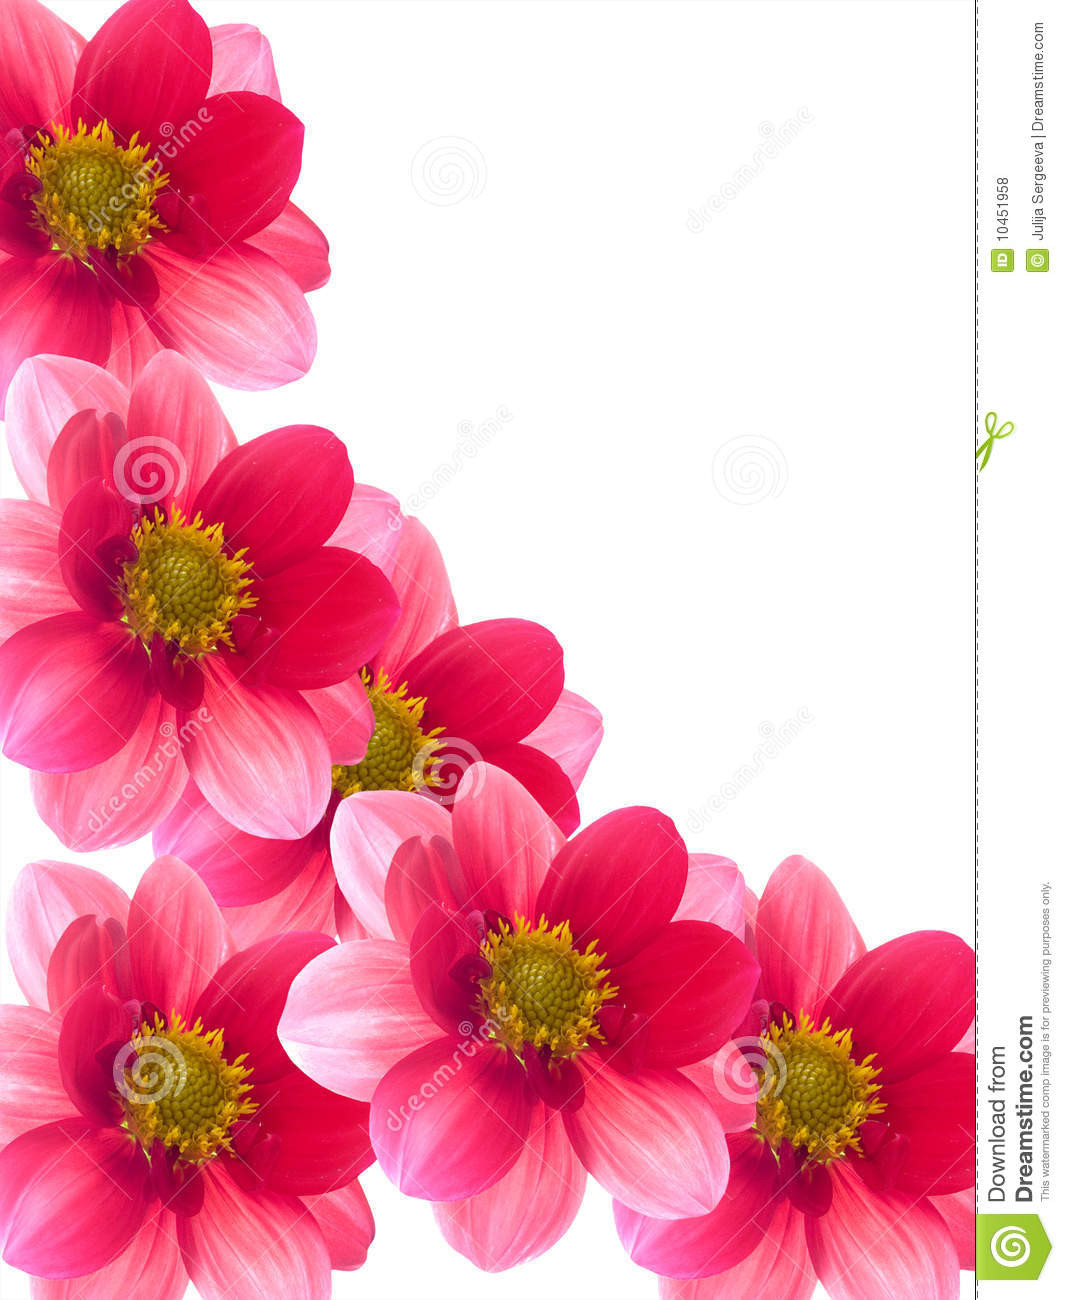 Flowers with red and pink petals stock photo image of summer flowers with red and pink petals mightylinksfo